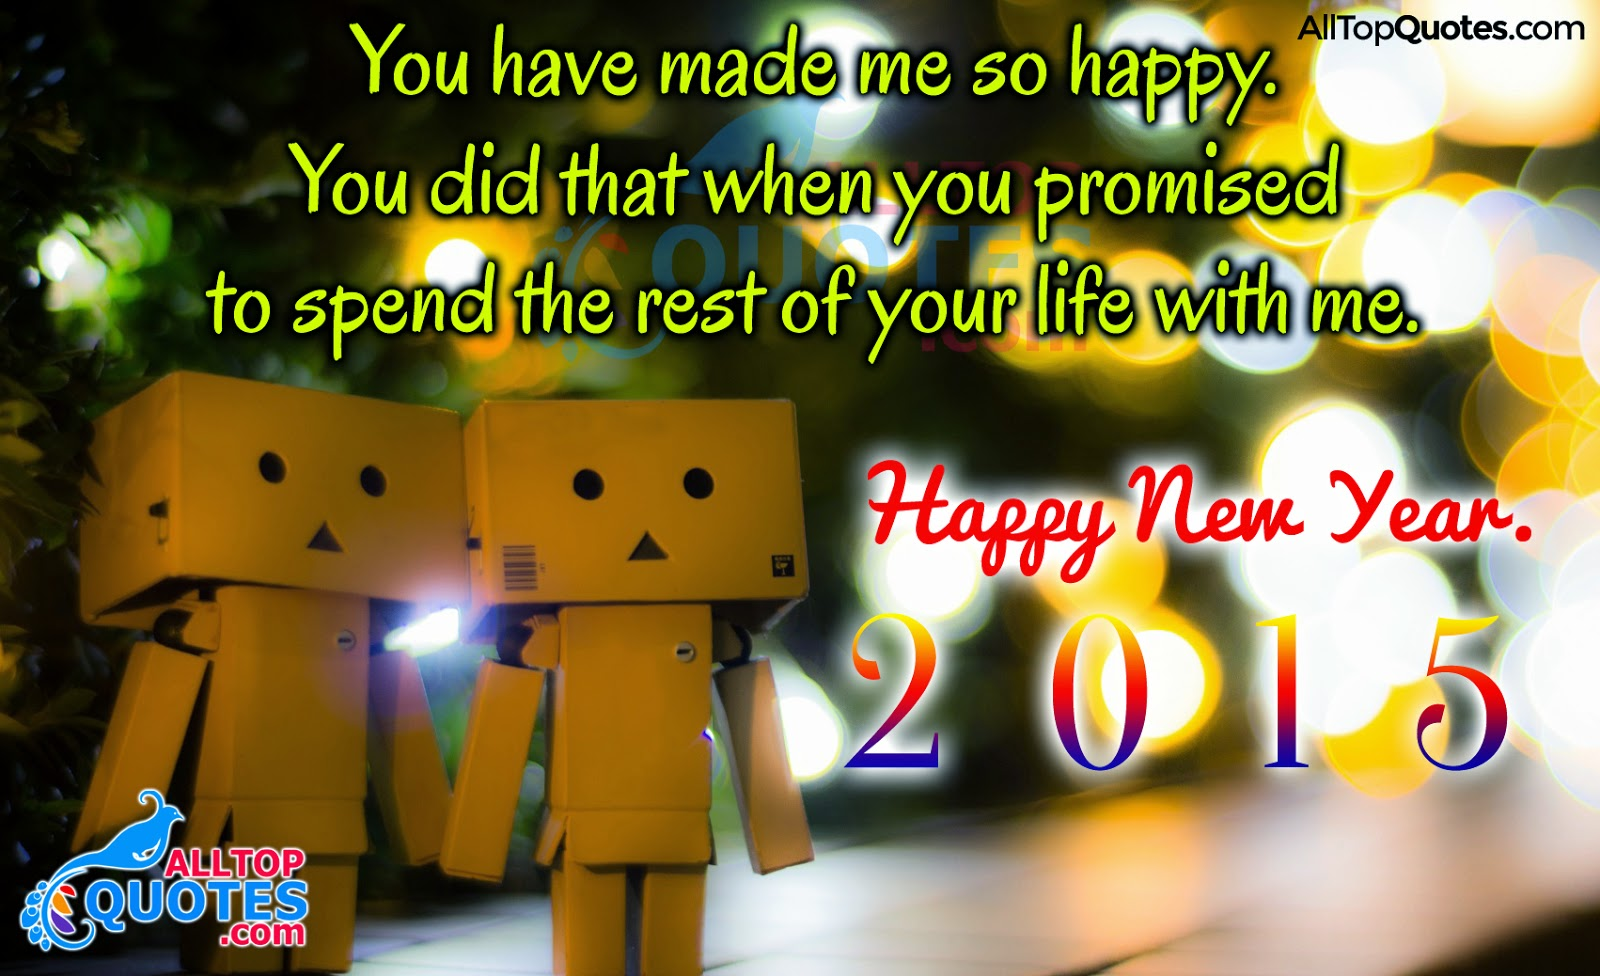 Romantic new year 2015 greetings in english all top quotes romantic new year 2015 greetings in english all top quotes telugu quotes tamil quotes english quotes kannada quotes hindi quotes m4hsunfo